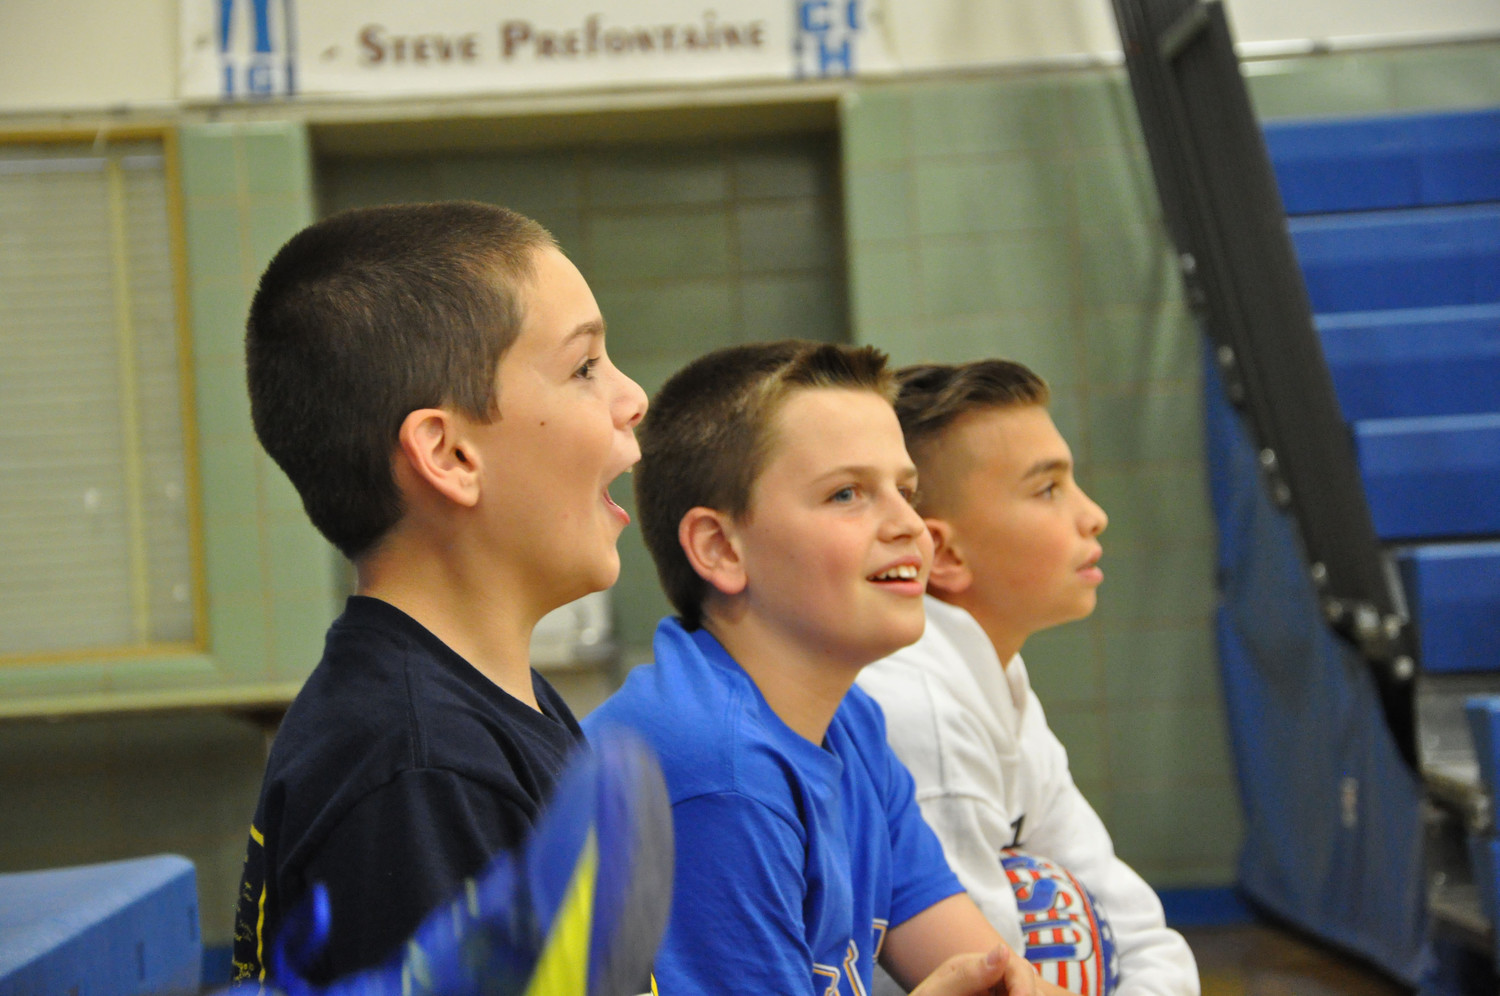 Patrick Crowe, left, Liam Glynn and Nicholas Decker enjoyed the game from the sidelines.